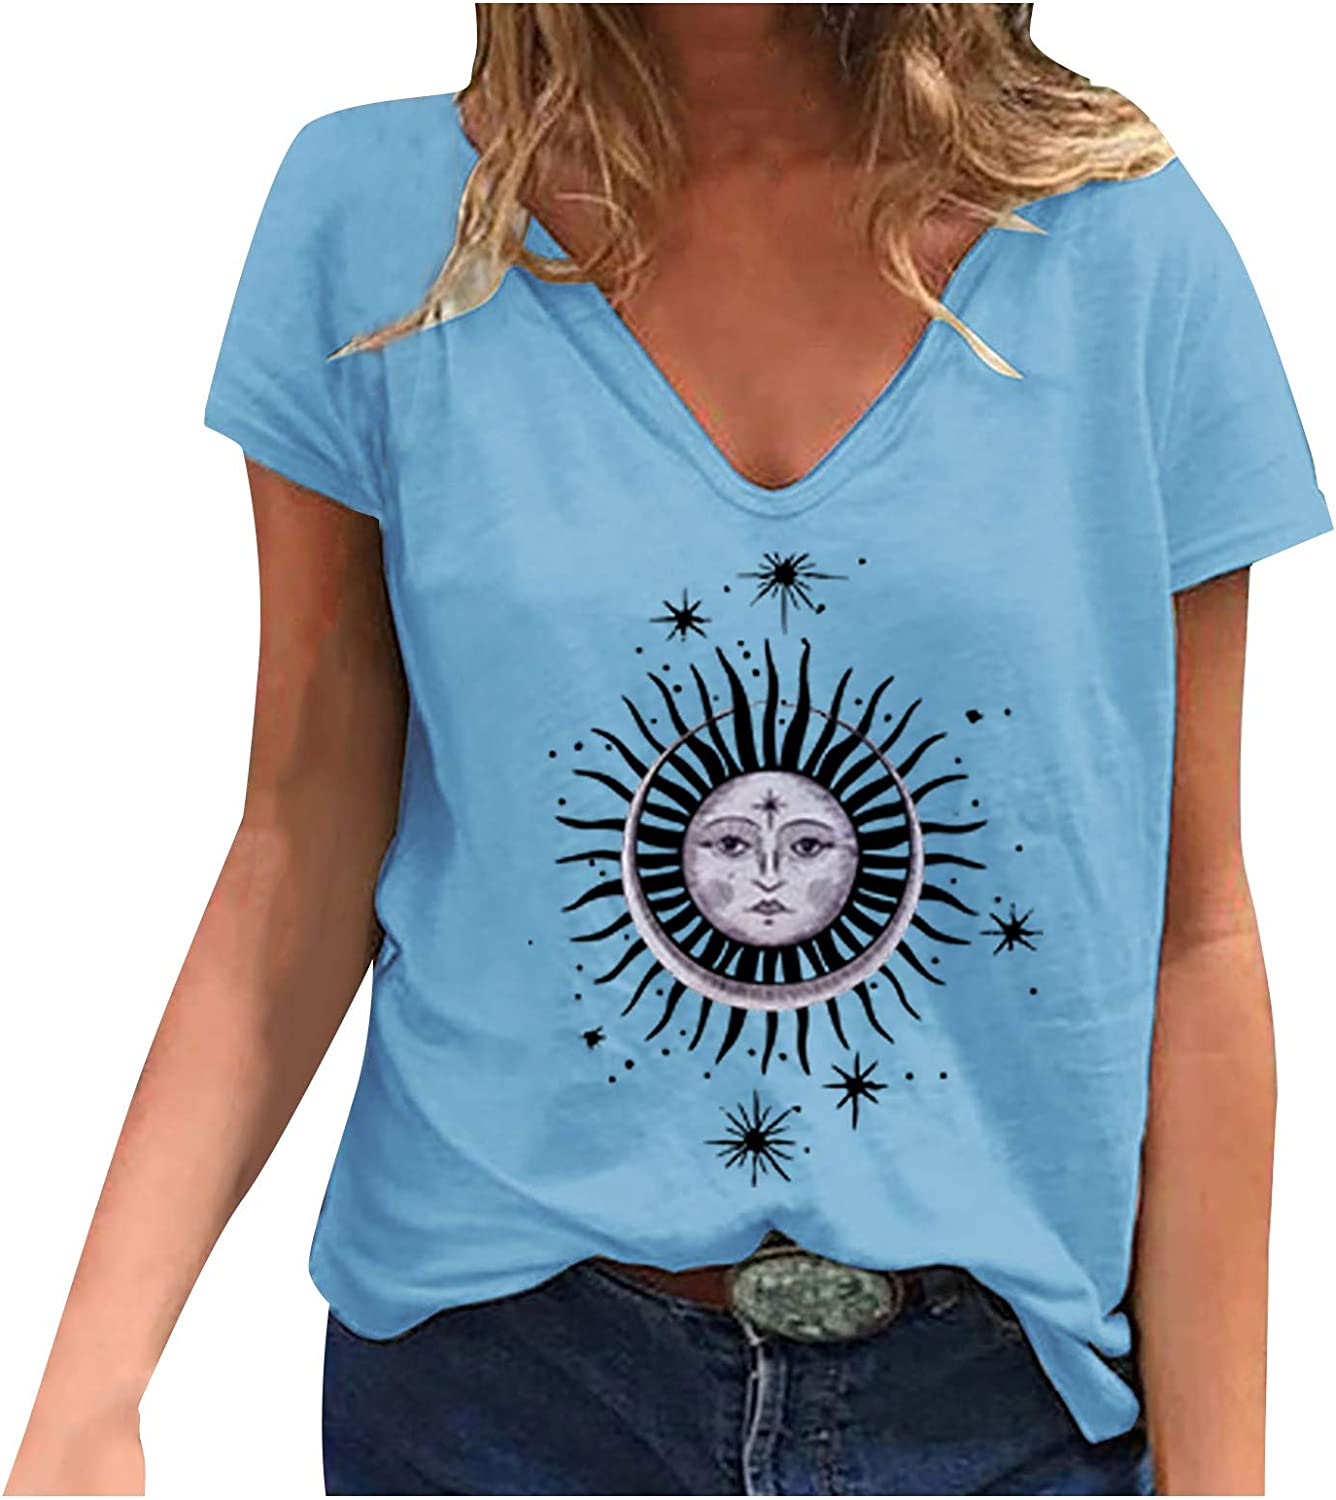 Women's Top,Womens Graphic Tees Summer Vintage Short Sleeve Moon and Sun Printed T Shirts V-Neck Tops